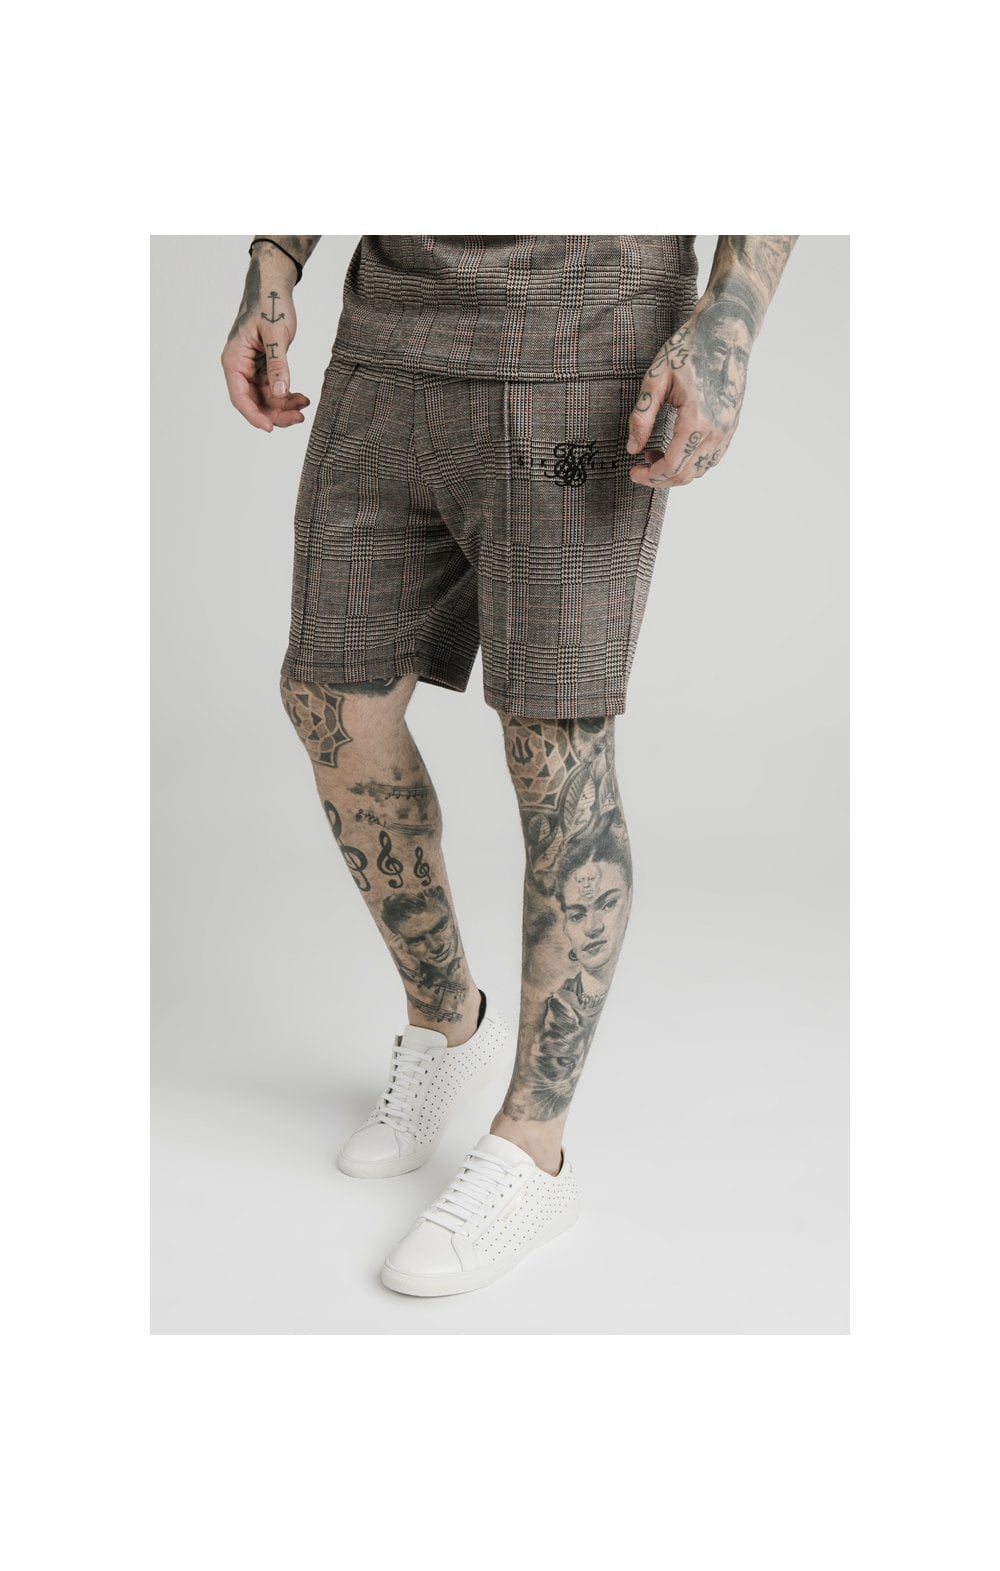 SikSilk Pleated Smart Shorts  Brown Dogtooth MEN SIZES BOTTOM: Small 3